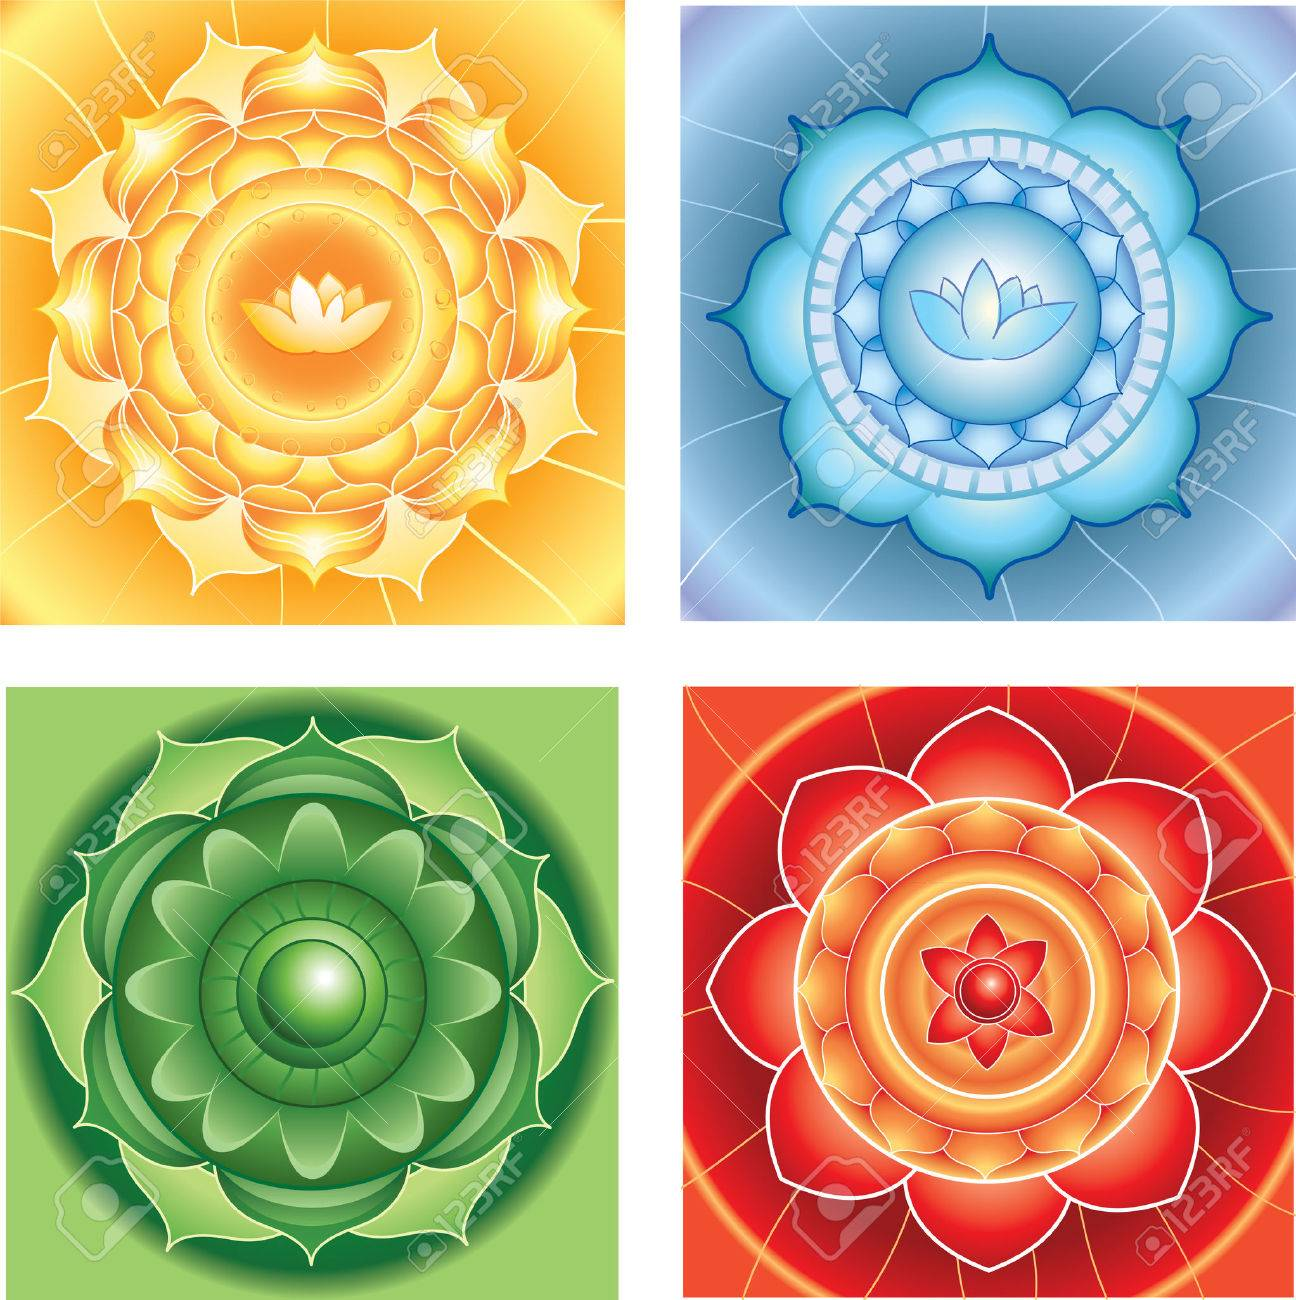 bright abstract circle backgrounds, mandalas of different chakras, vector Stock Vector - 29348902